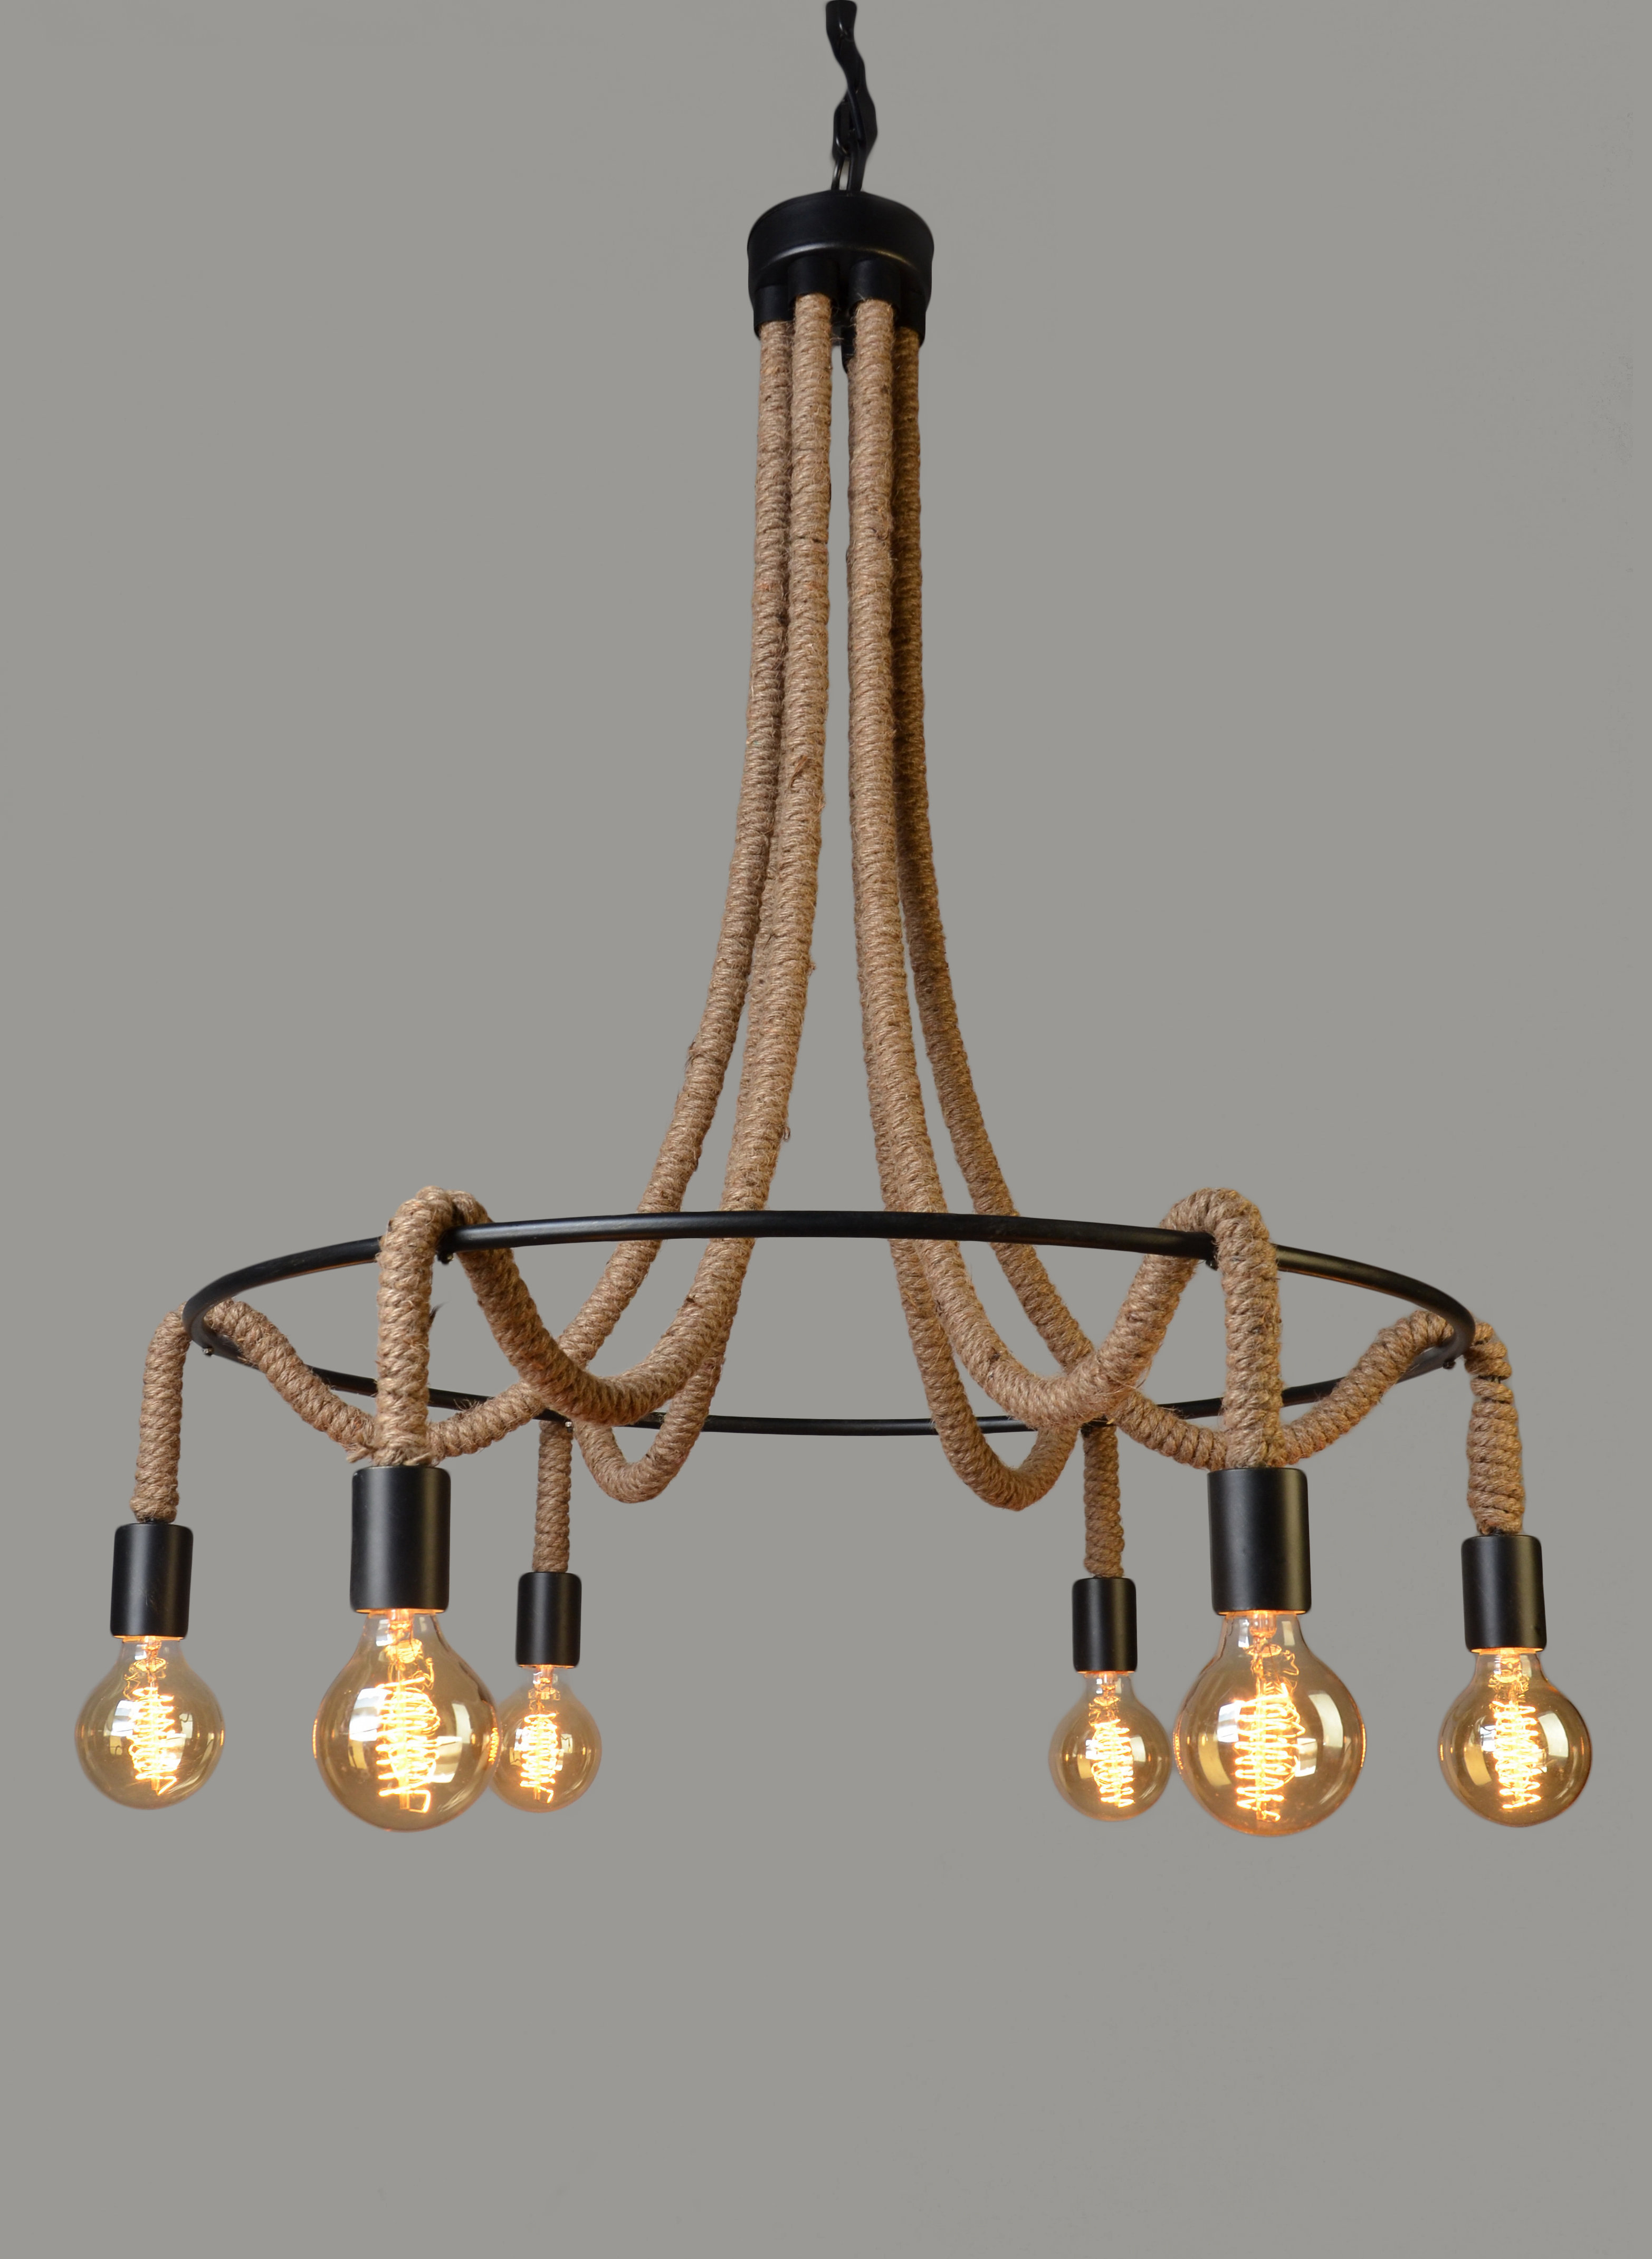 Goodrum 6 Light Wagon Wheel Chandelier With Regard To Millbrook 5 Light Shaded Chandeliers (View 18 of 30)